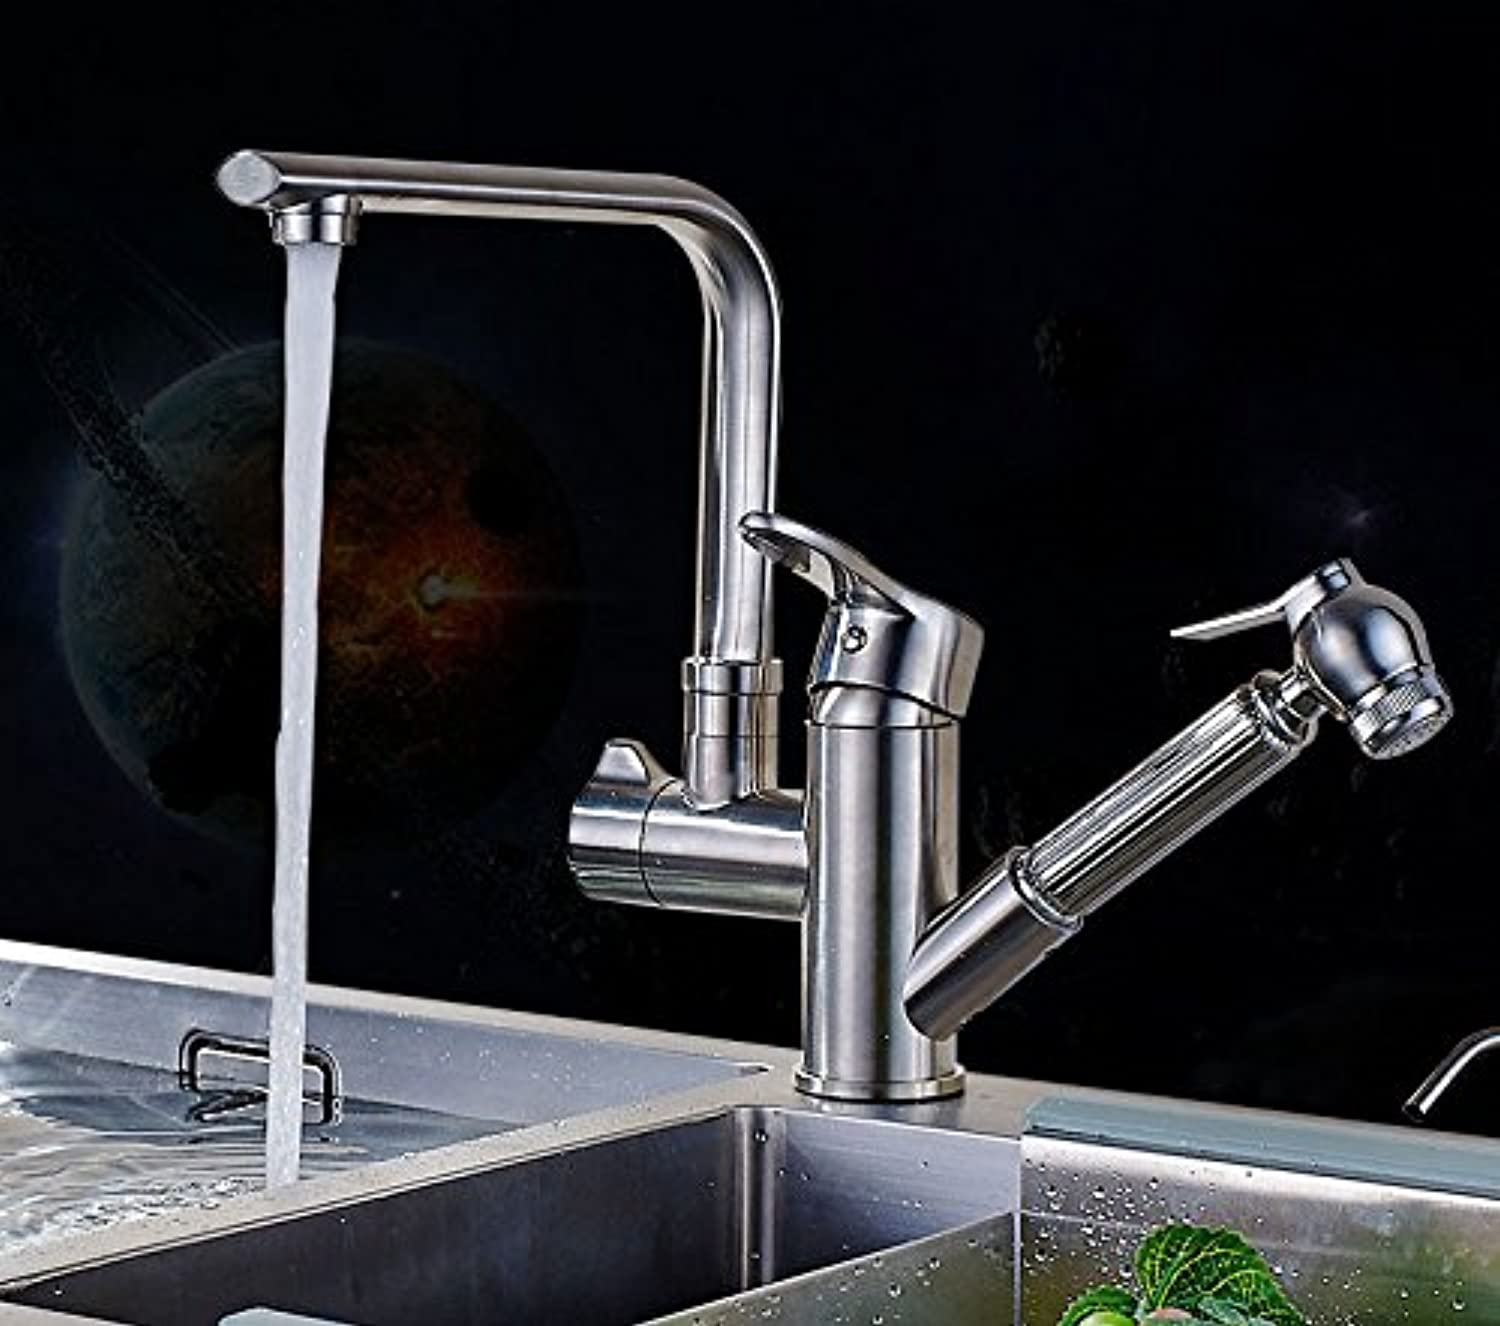 Bijjaladeva Bathroom Sink Vessel Faucet Basin Mixer Tap All copper pull kitchen faucet hot and cold dishes and wash basin sink faucet telescopic basin can be turned on tub faucet B